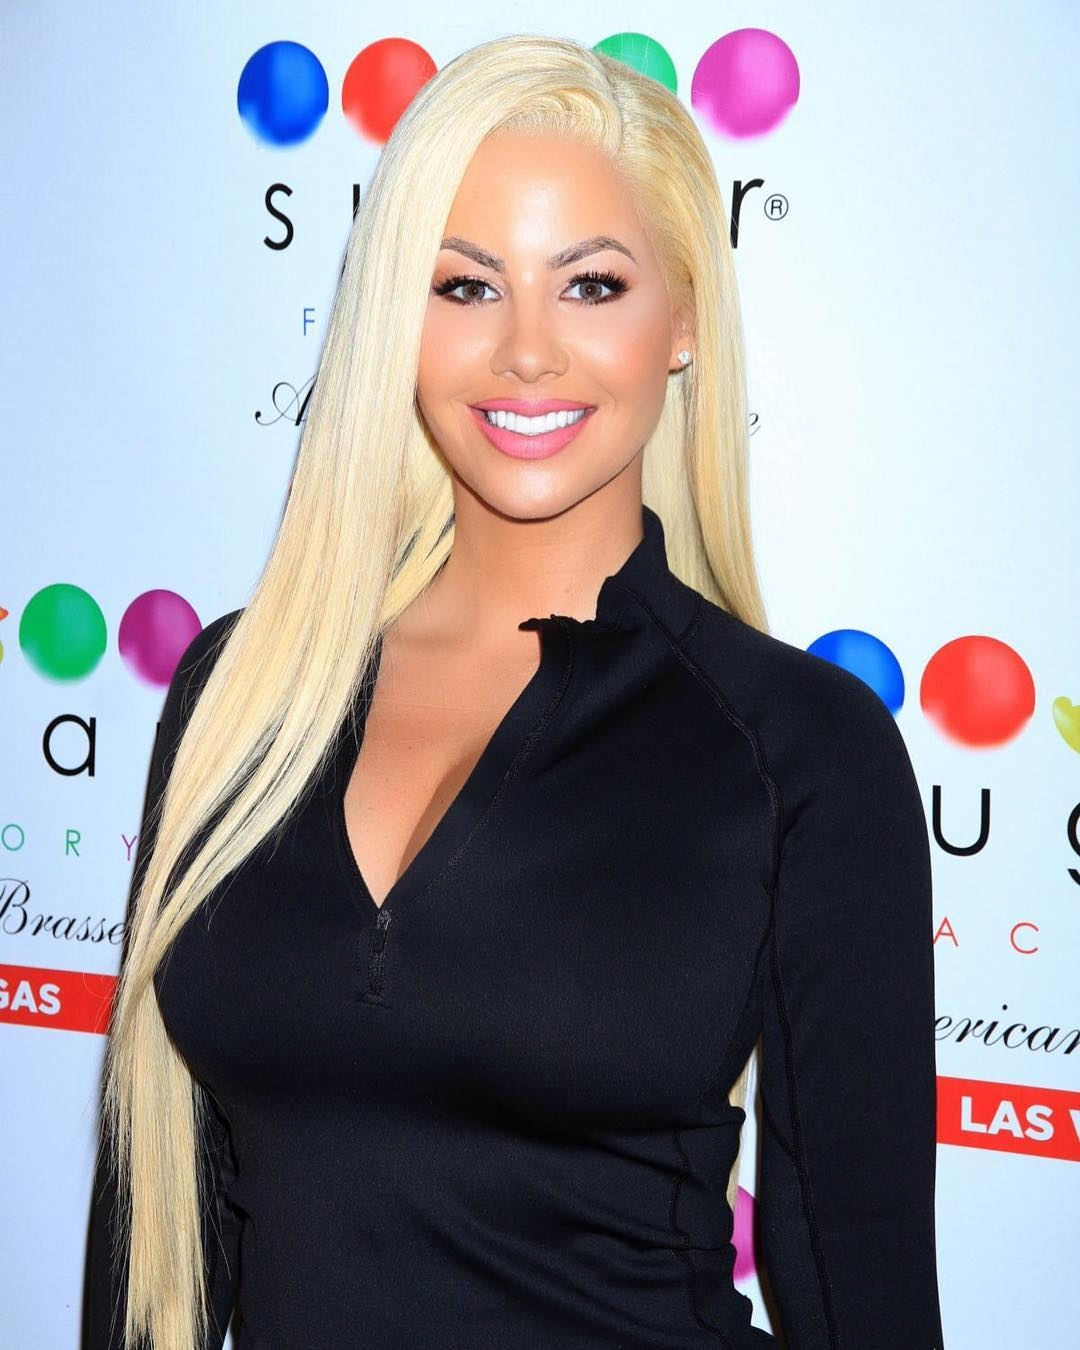 Amber Rose's blonde hair wigs